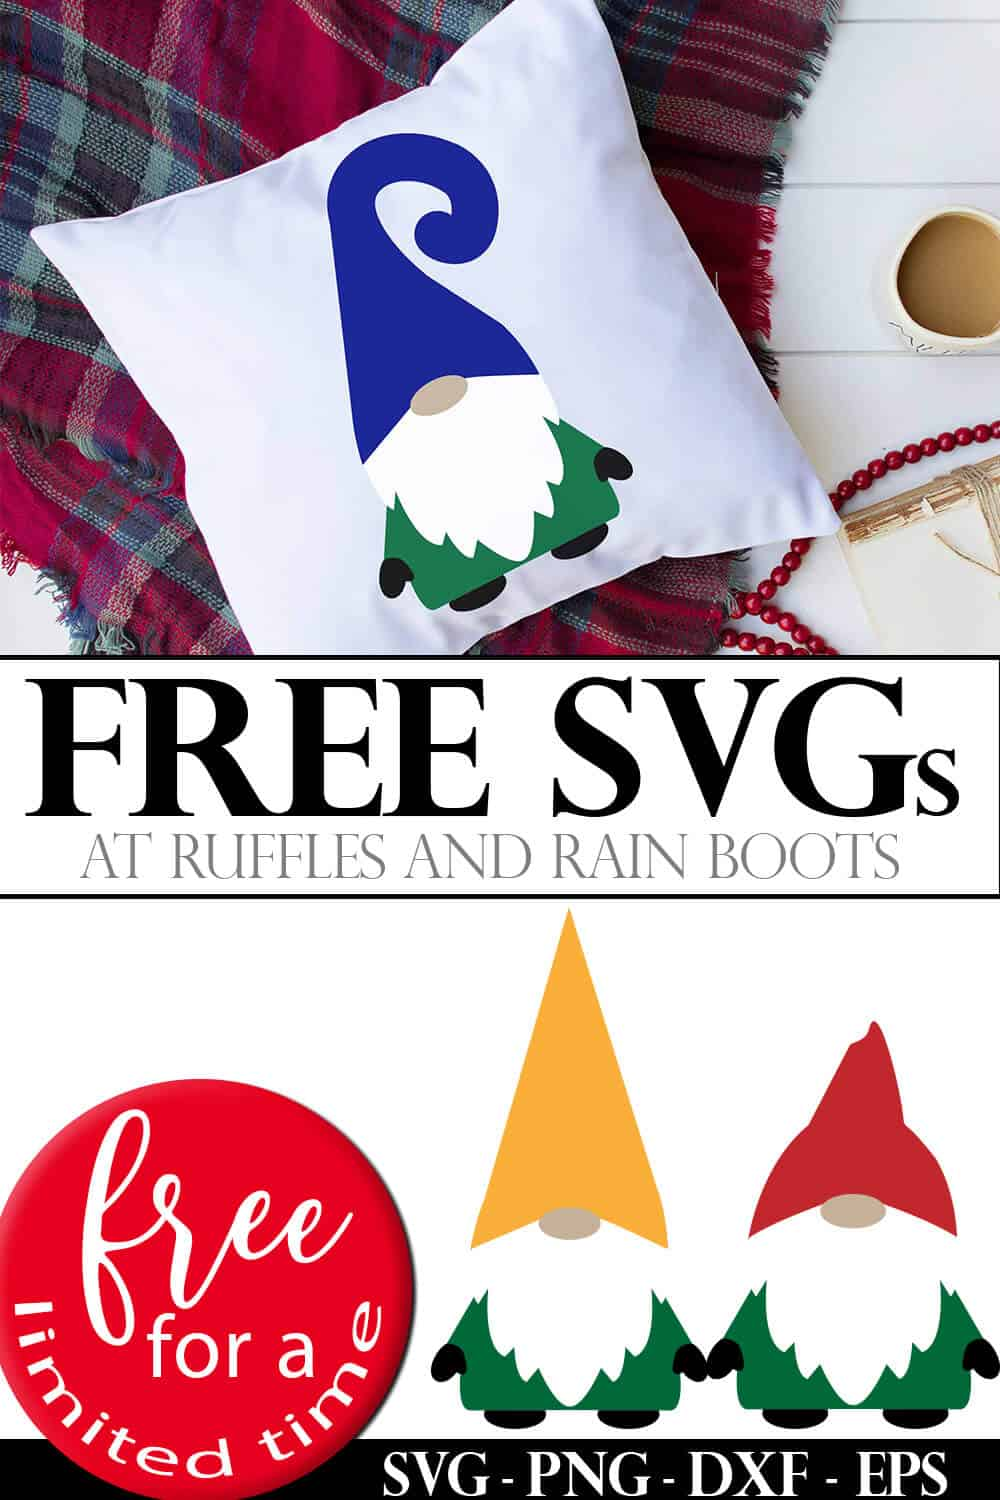 photo collage of three gnome Christmas cut files with text which reads free svgs free for a limited time